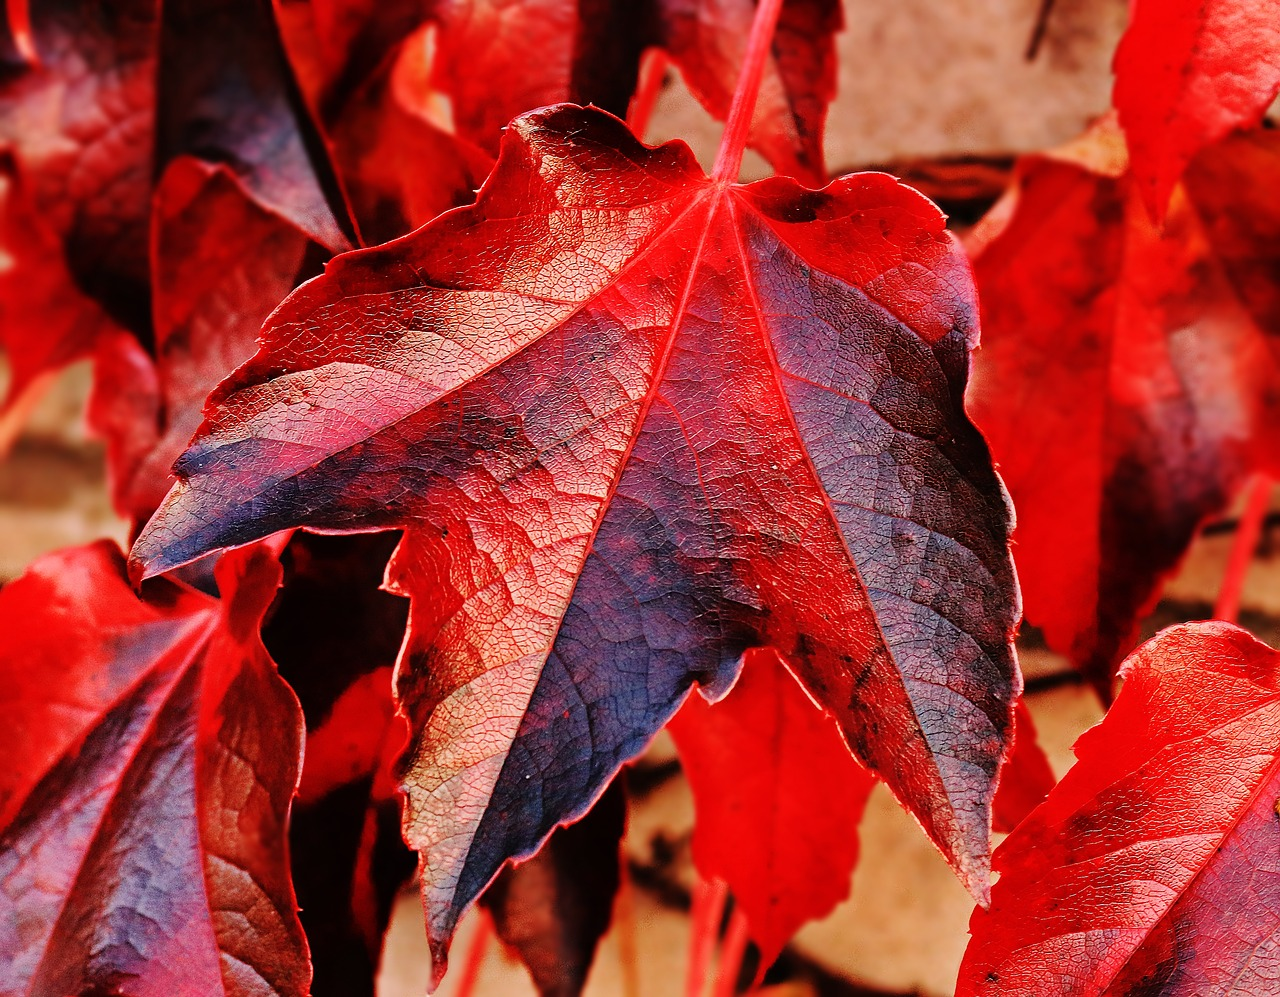 Closeup of red maple leafs showing fall colors - Econodek